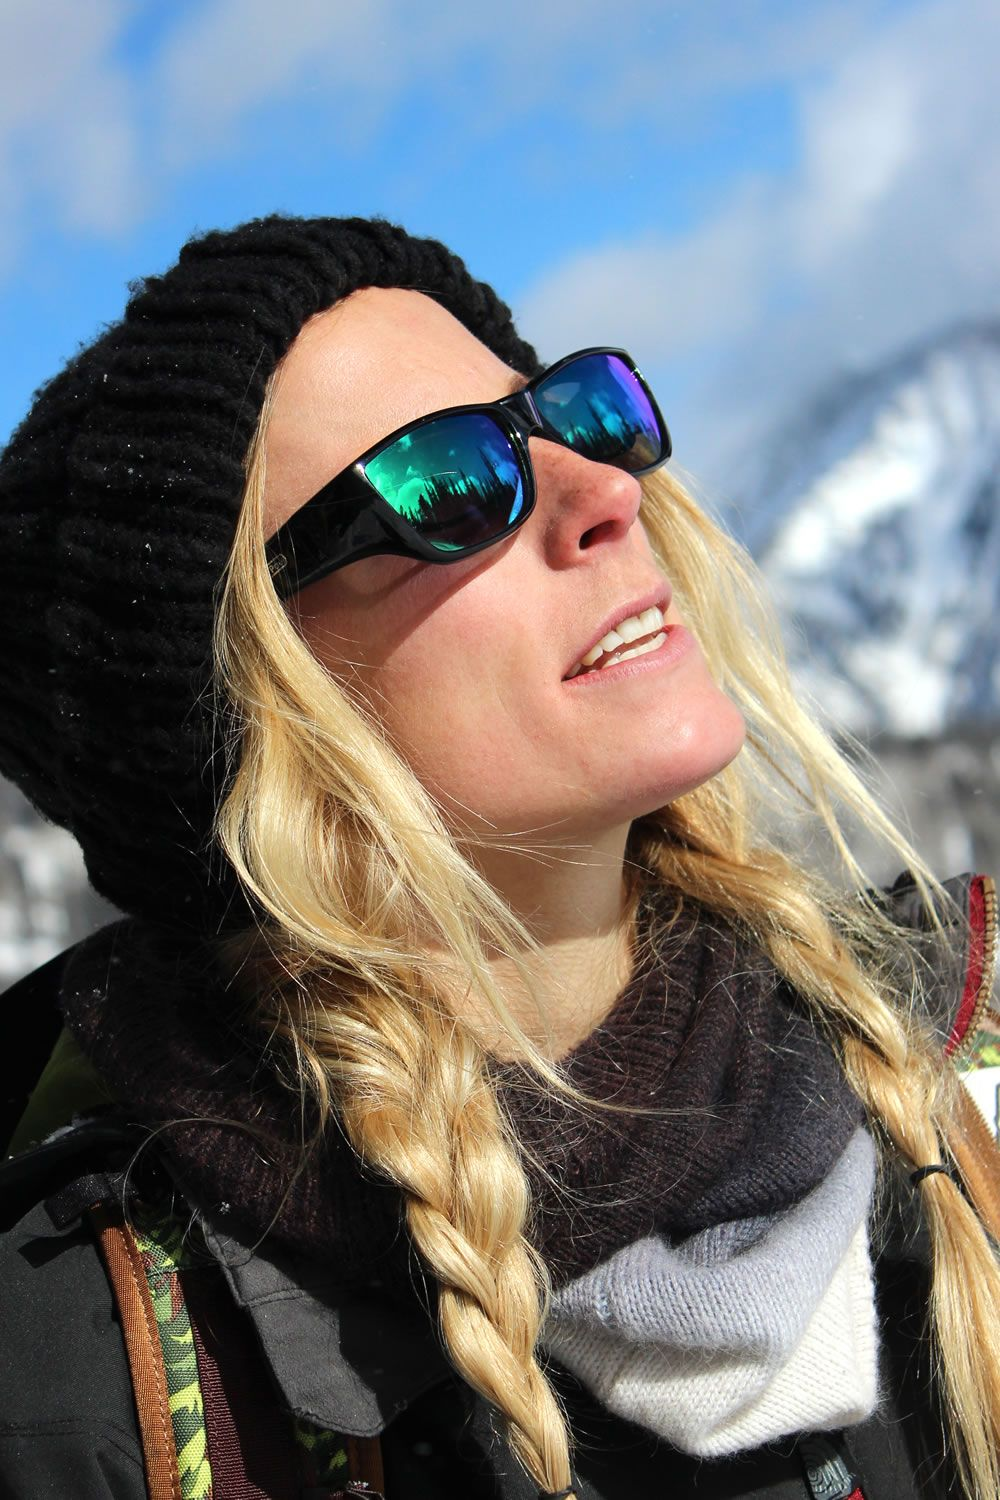 bc46e29e56 Neera Midnite Oil (Green Mirror) fitover sunglasses by Jonathan Paul® are  perfect for adventures in the snow. With 100% UVA UVB protection